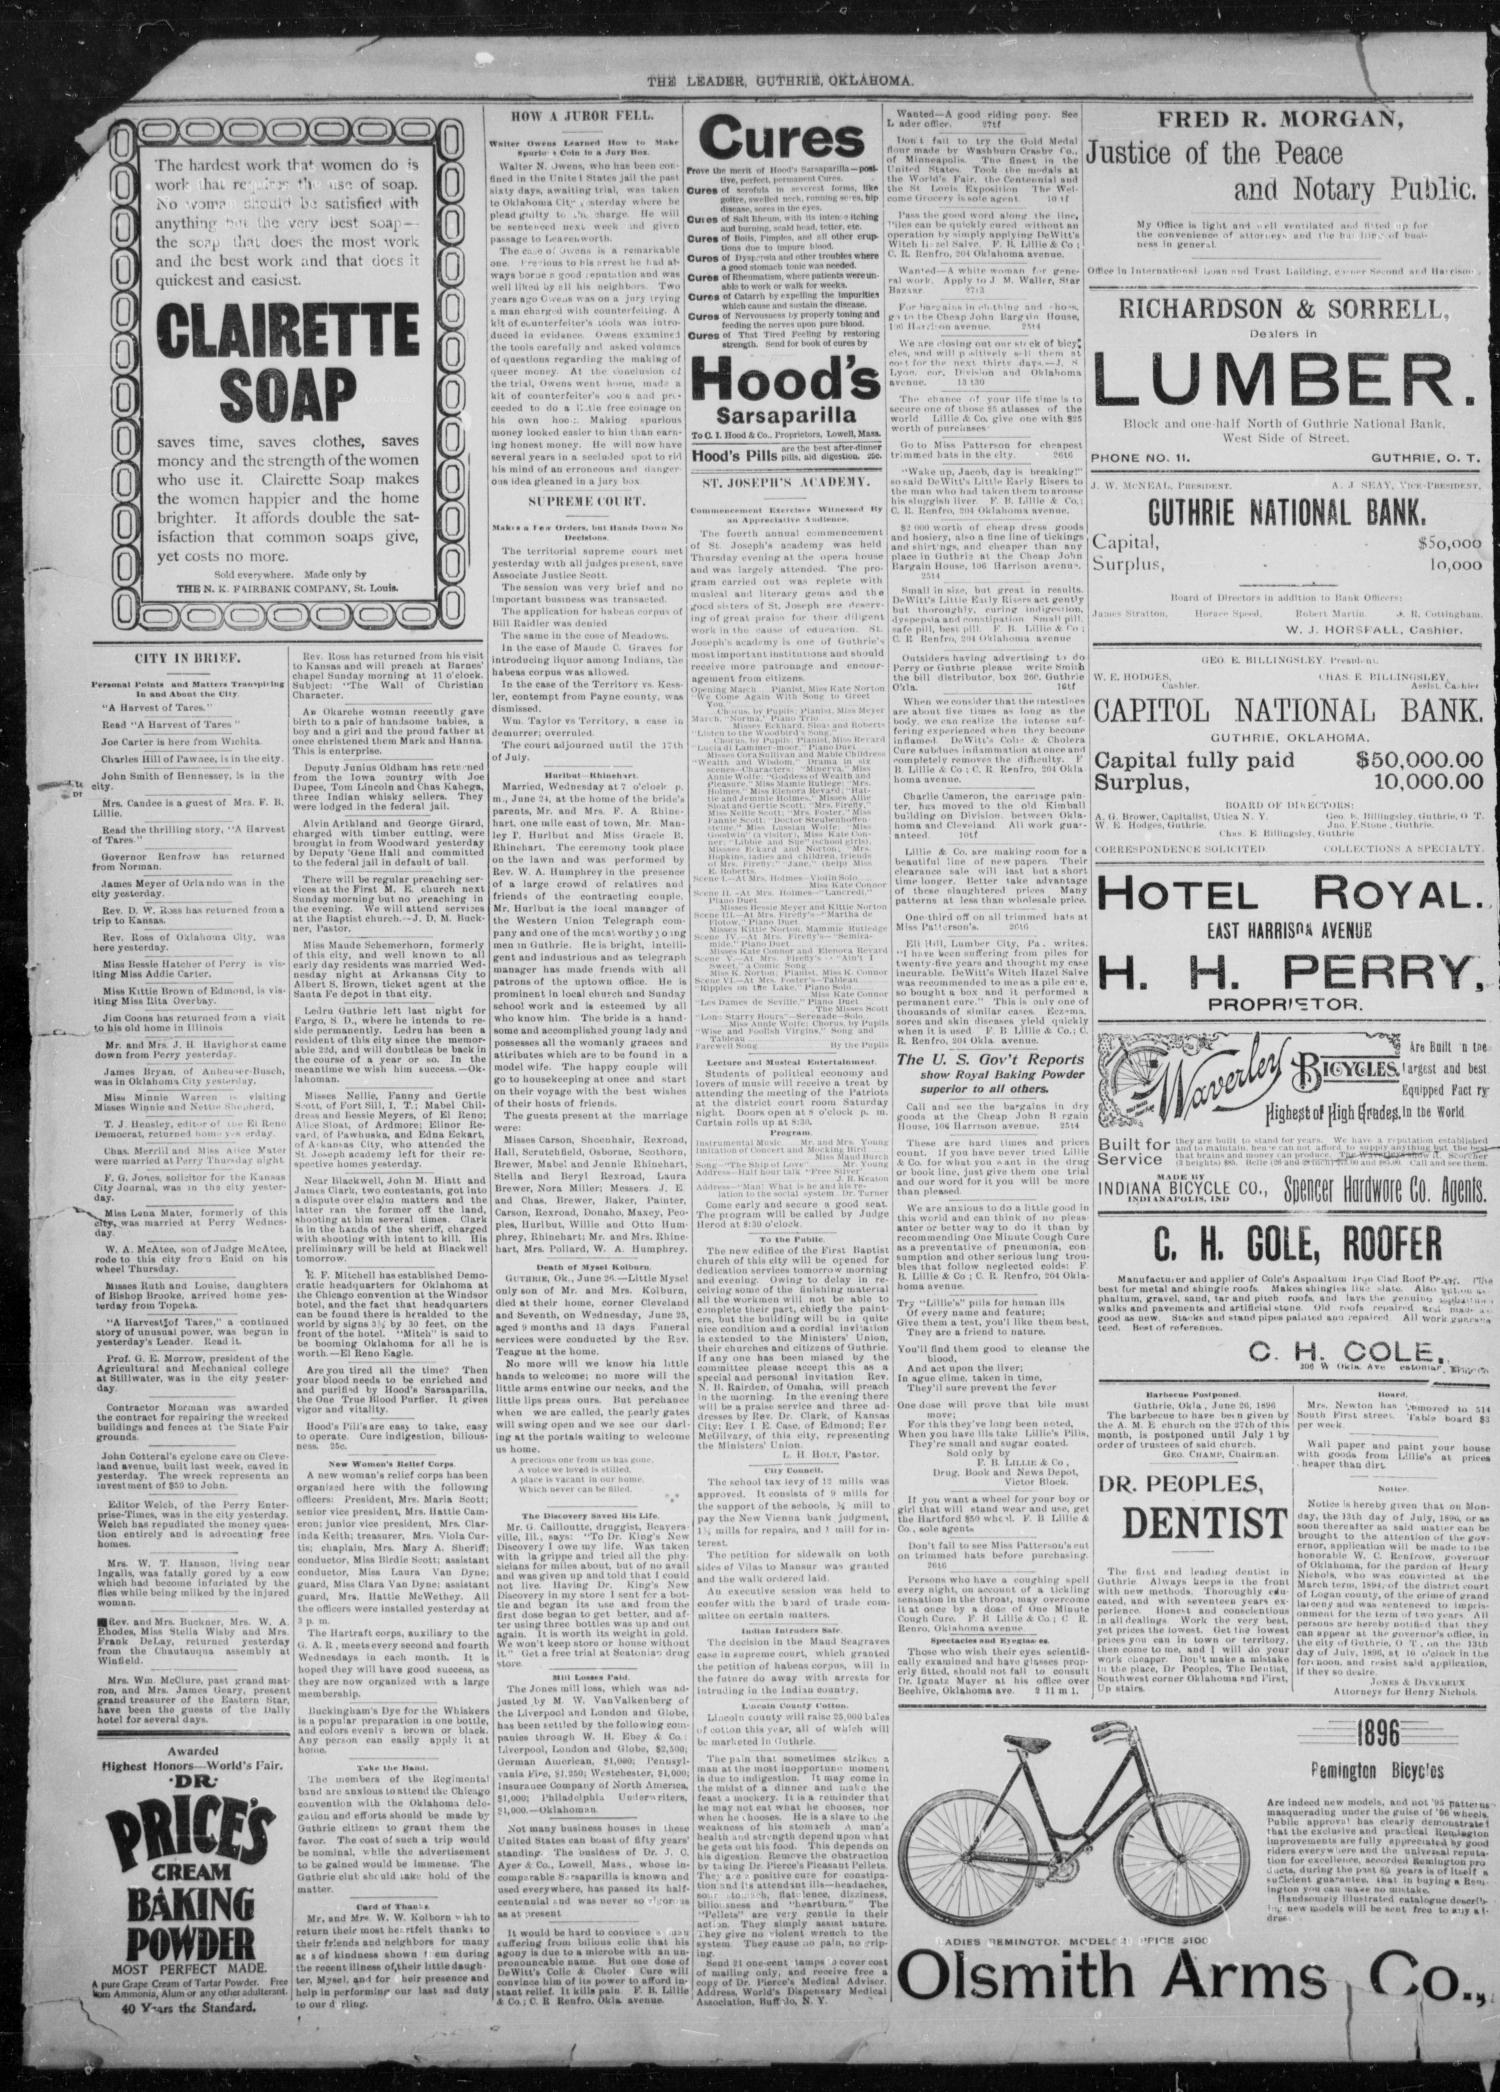 The Guthrie Daily Leader. (Guthrie, Okla.), Vol. 8, No. 23, Ed. 1, Saturday, June 27, 1896